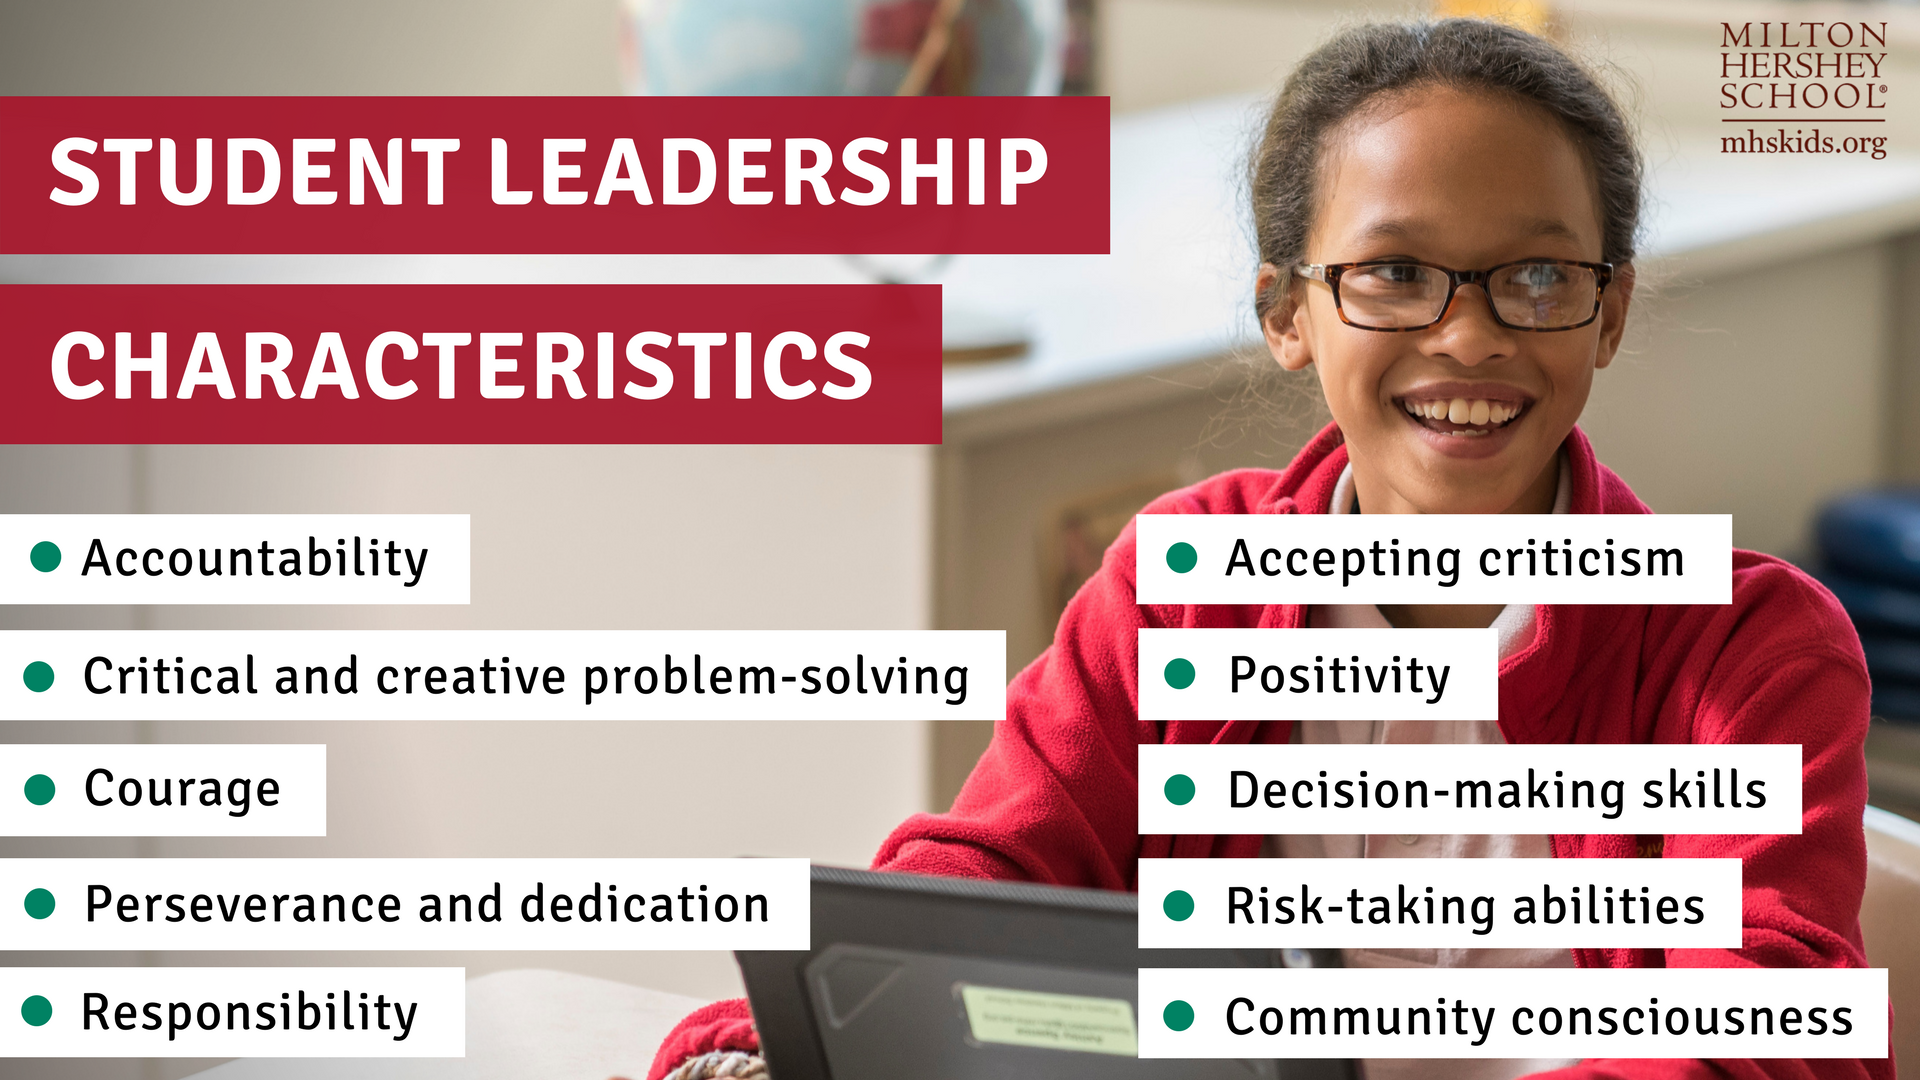 Through social and emotional learning, educators and parents can encourage students to begin analyzing their habits and help empower them as student leaders.